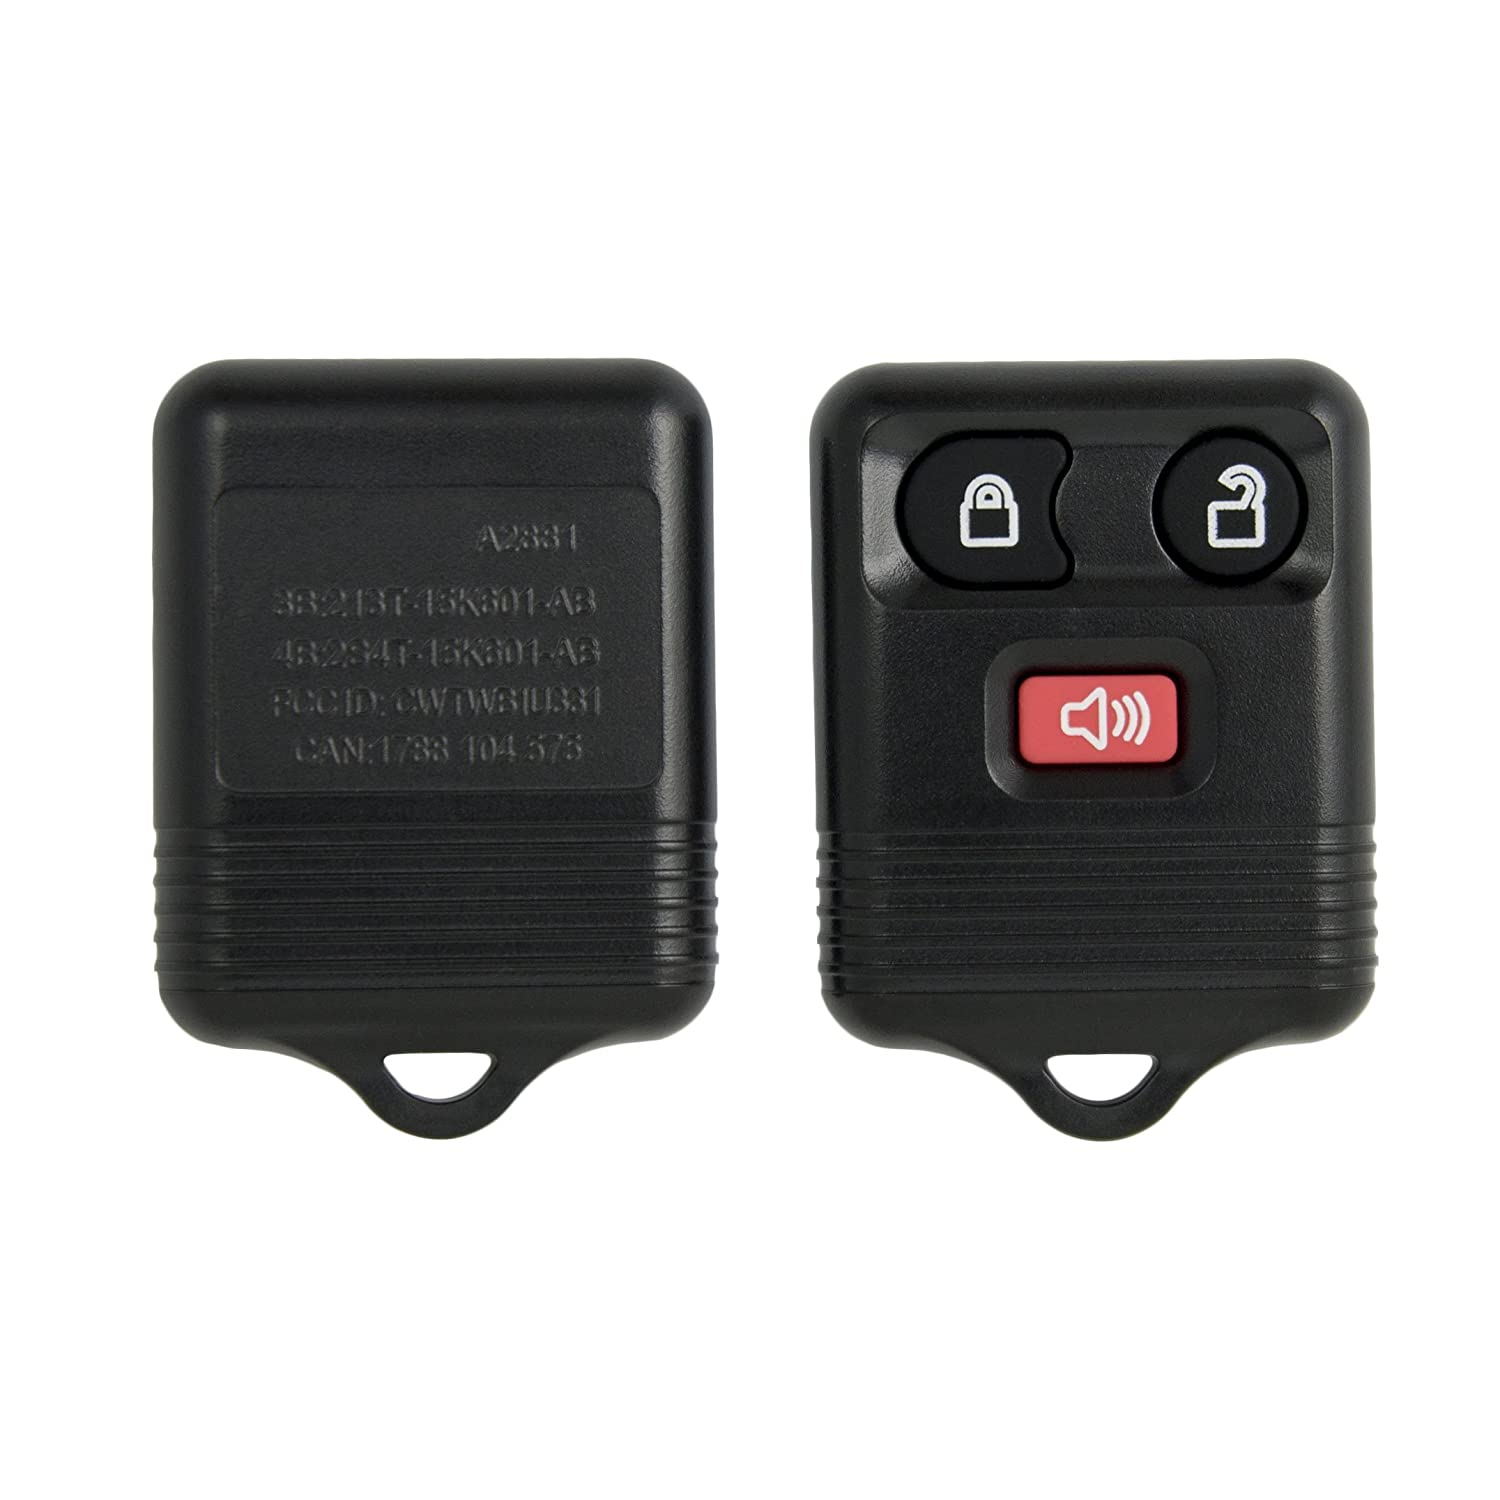 SHELL ONLY Keyless2Go New Replacement Shell Case and 3 Button Pad for Remote Key Fob with FCC CWTWB1U345 CWTWB1U331